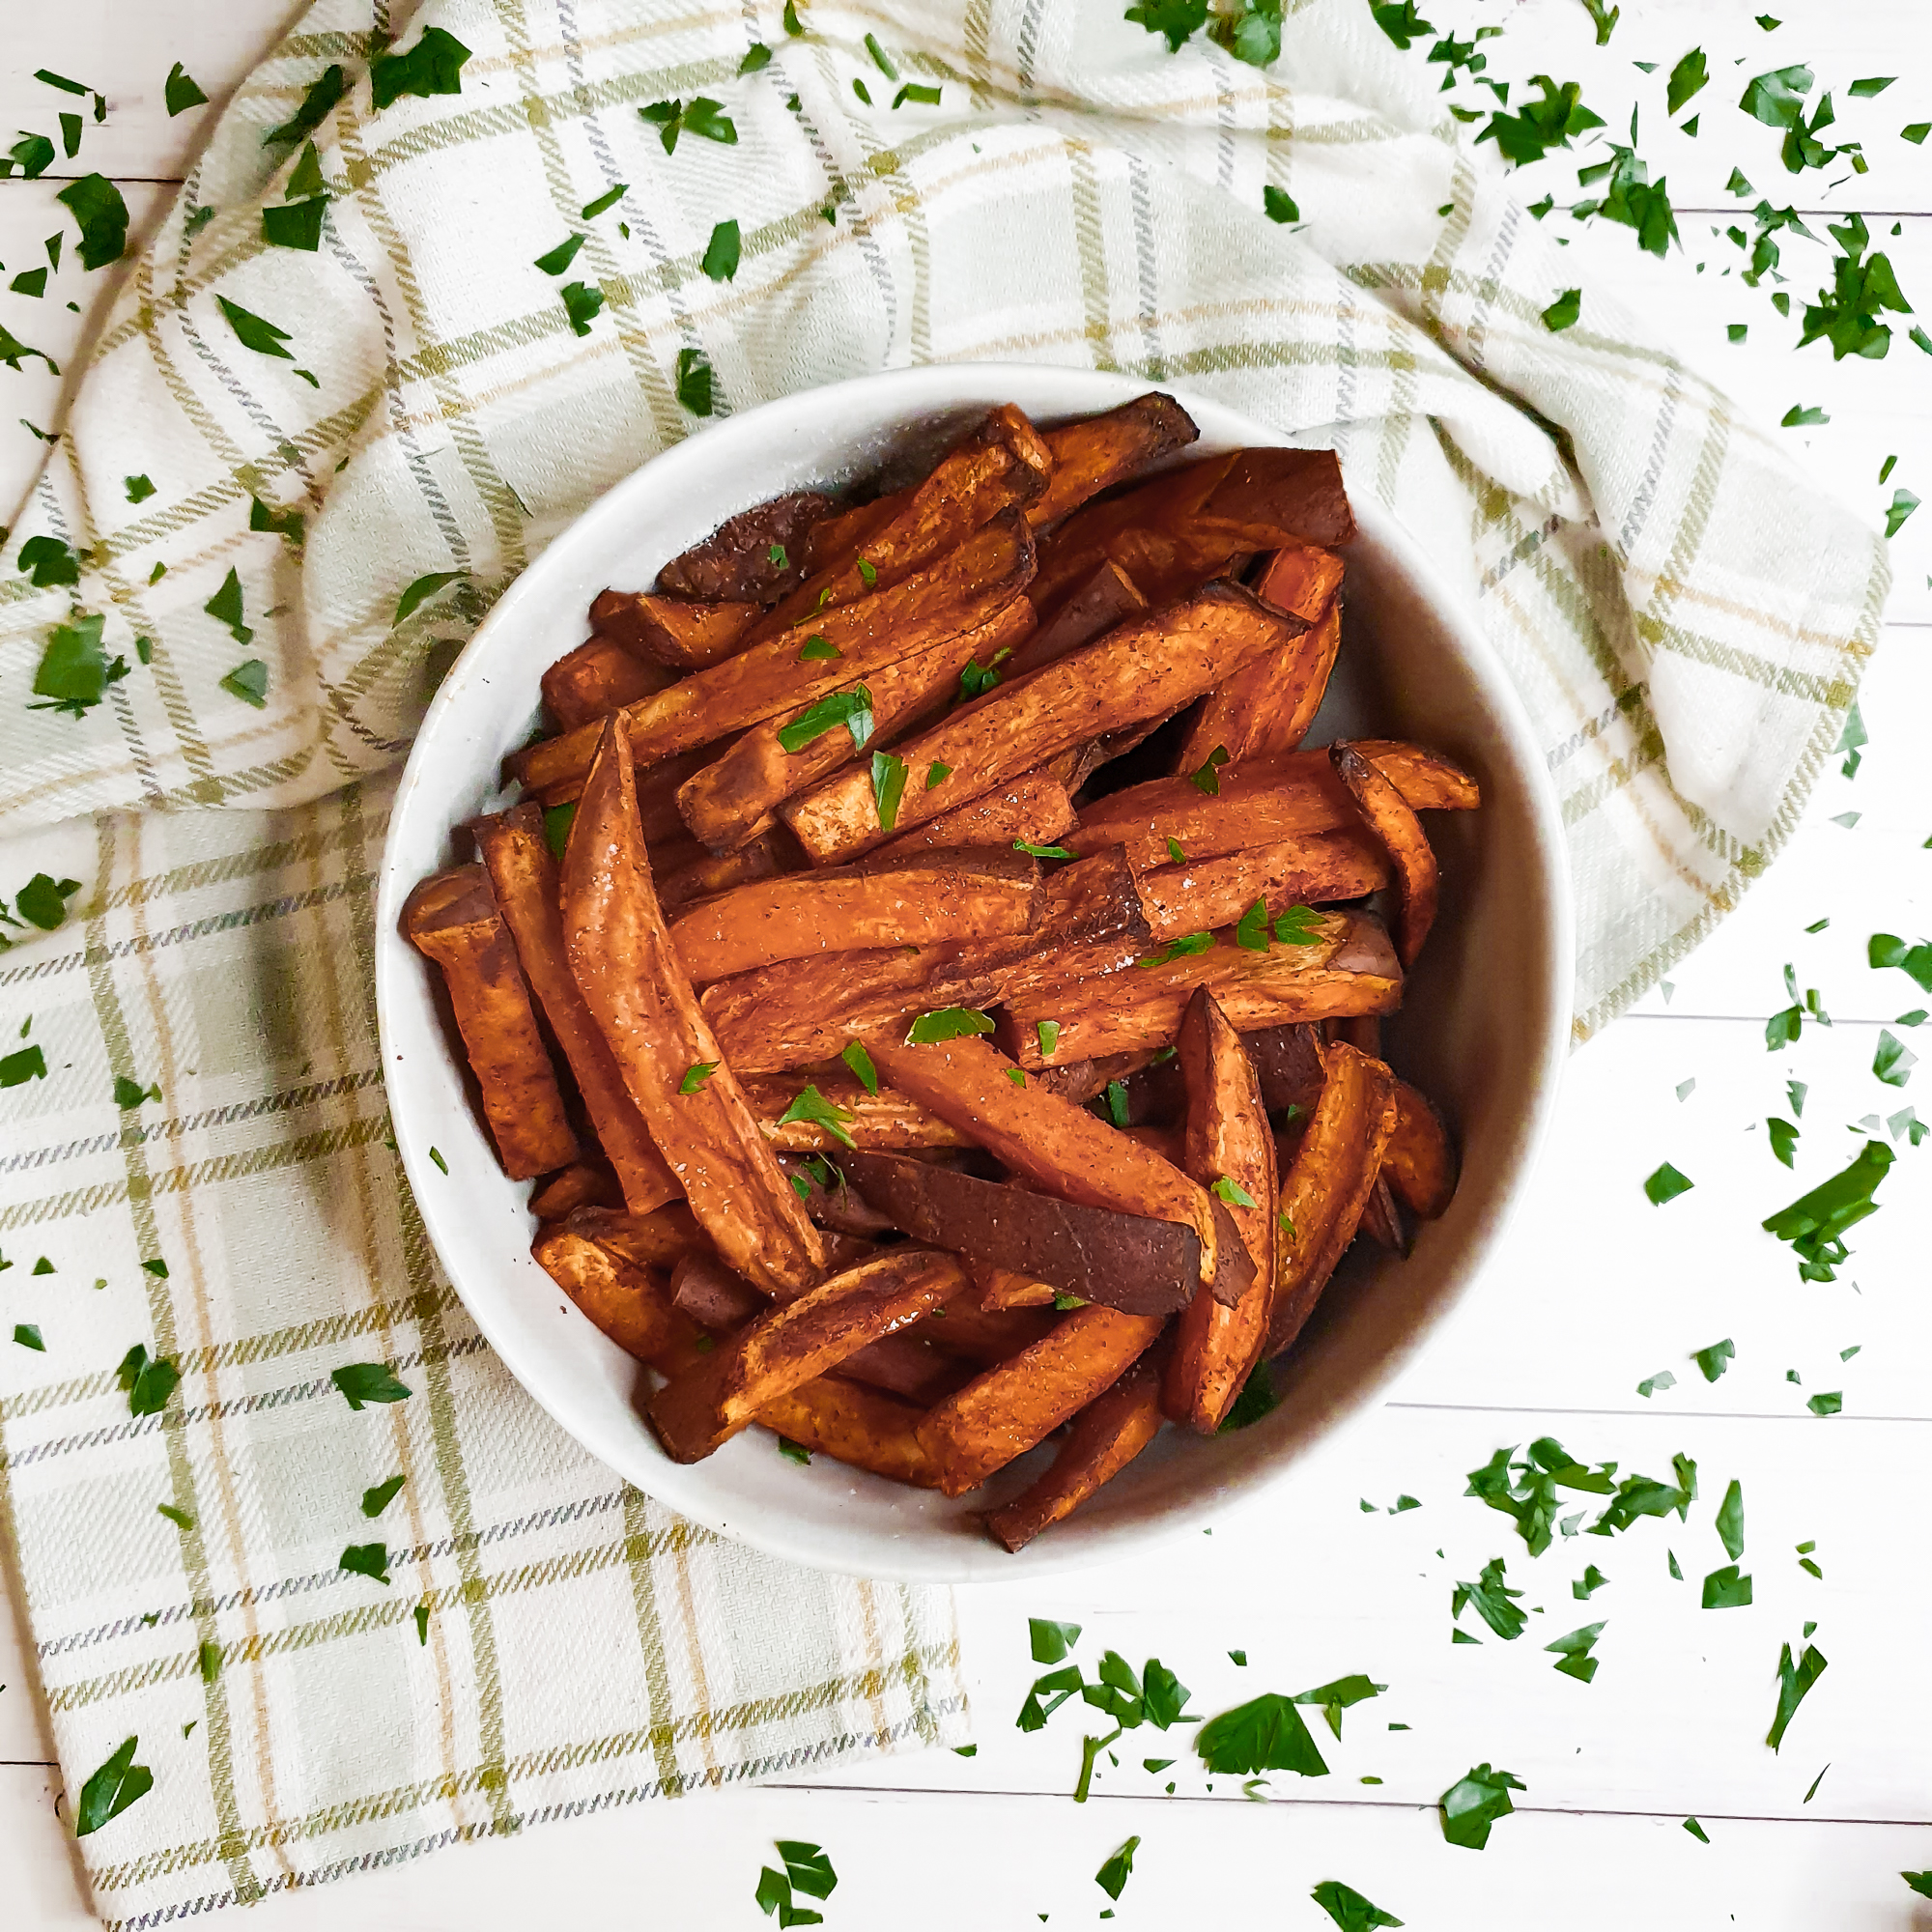 Crunchy Oven Baked Sweet Potato Fries Cooking With Bry